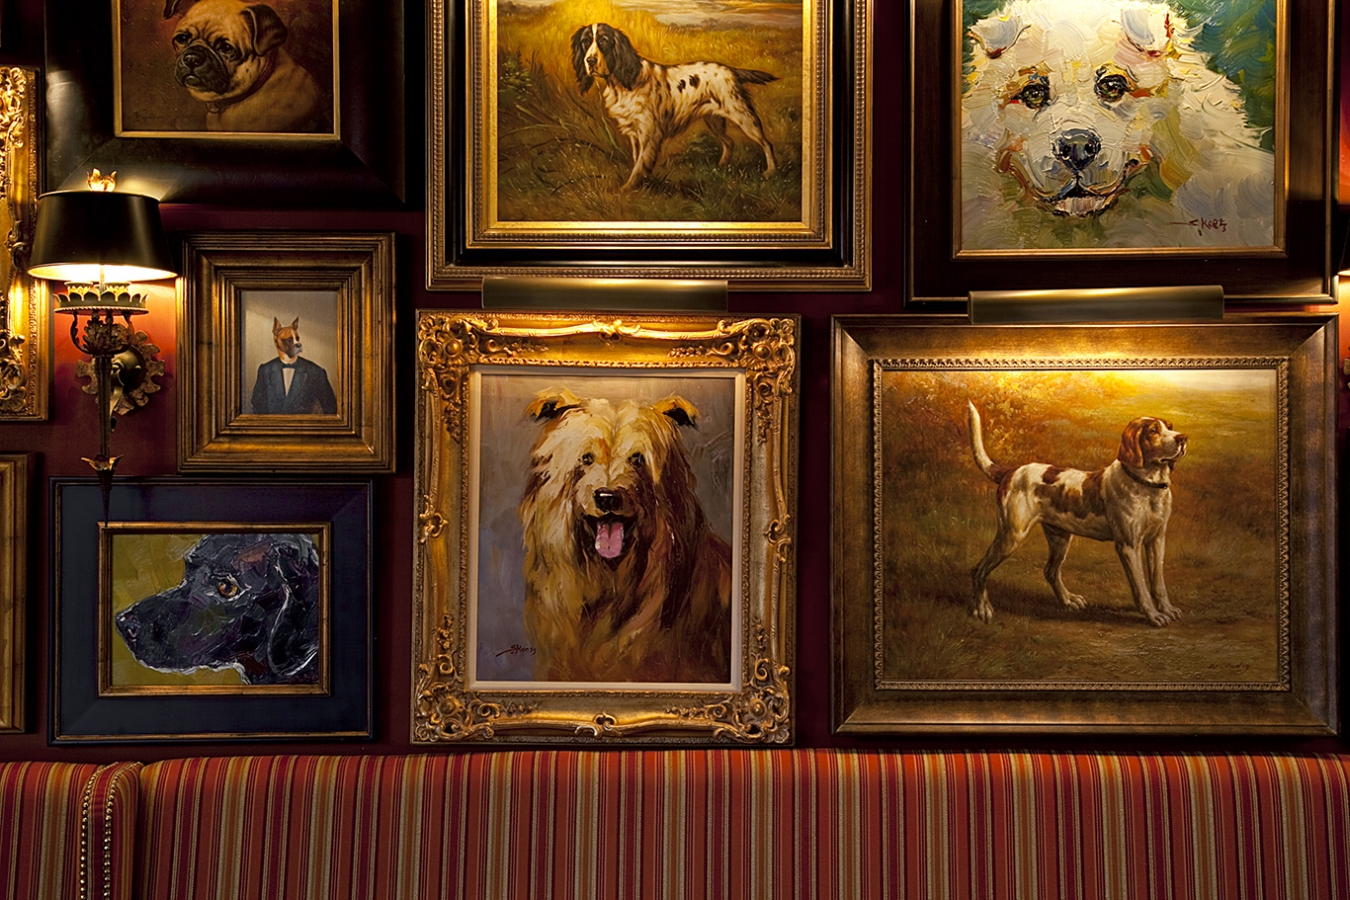 Dog portraits align the walls of White Dog Wayne